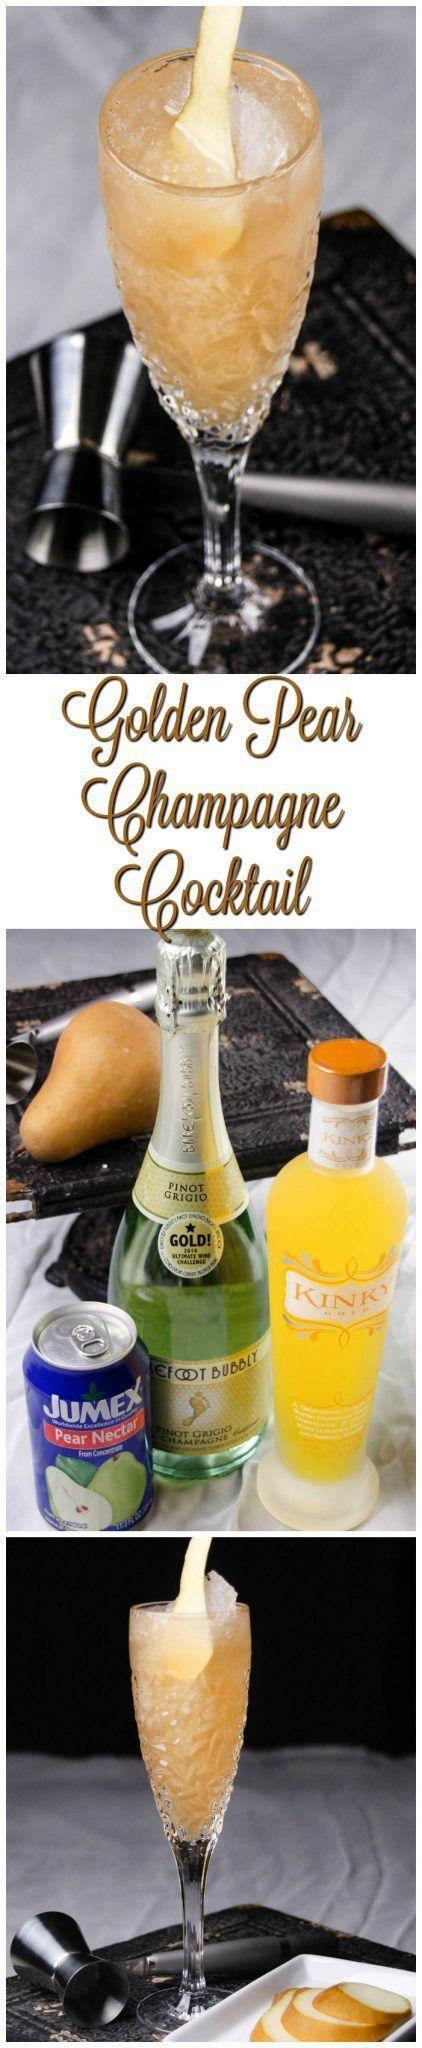 Golden Pear Champagne Cocktail - This cocktail is perfect for your next get together or for your New Year's Eve party!